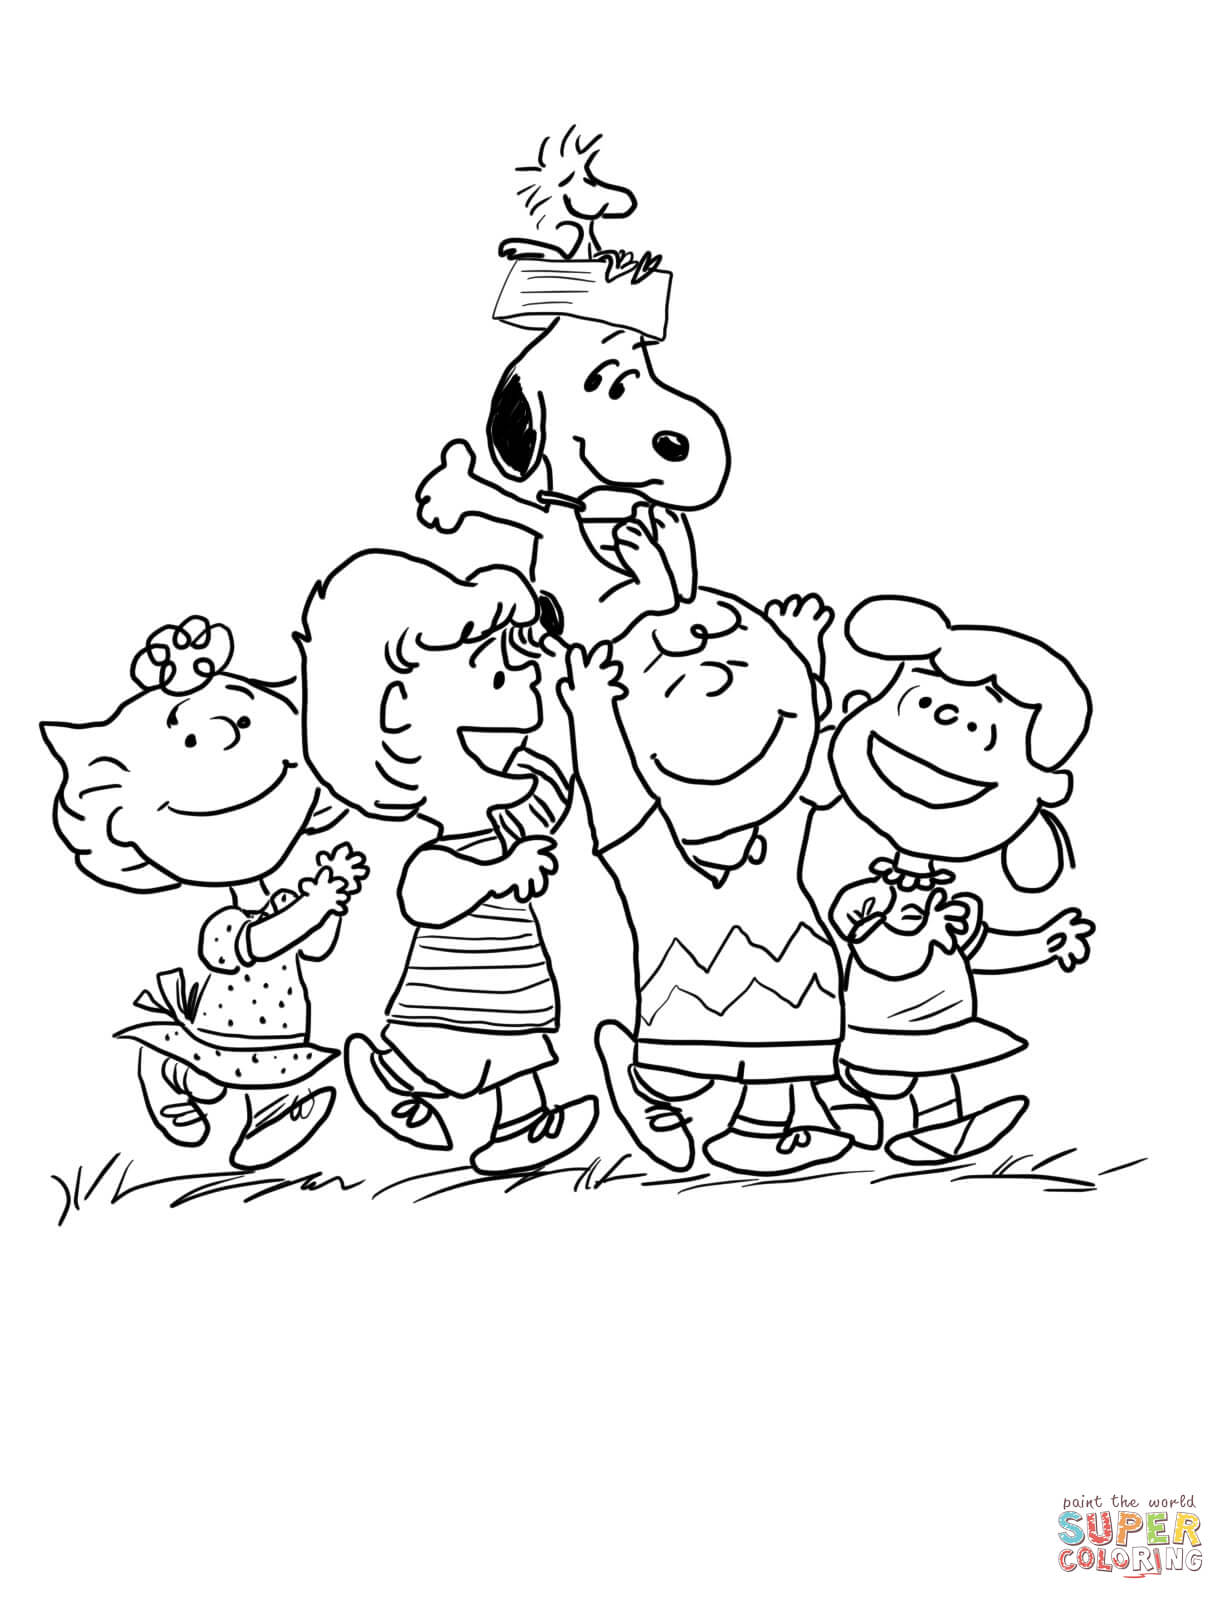 Peanuts Gang coloring page | Free Printable Coloring Pages